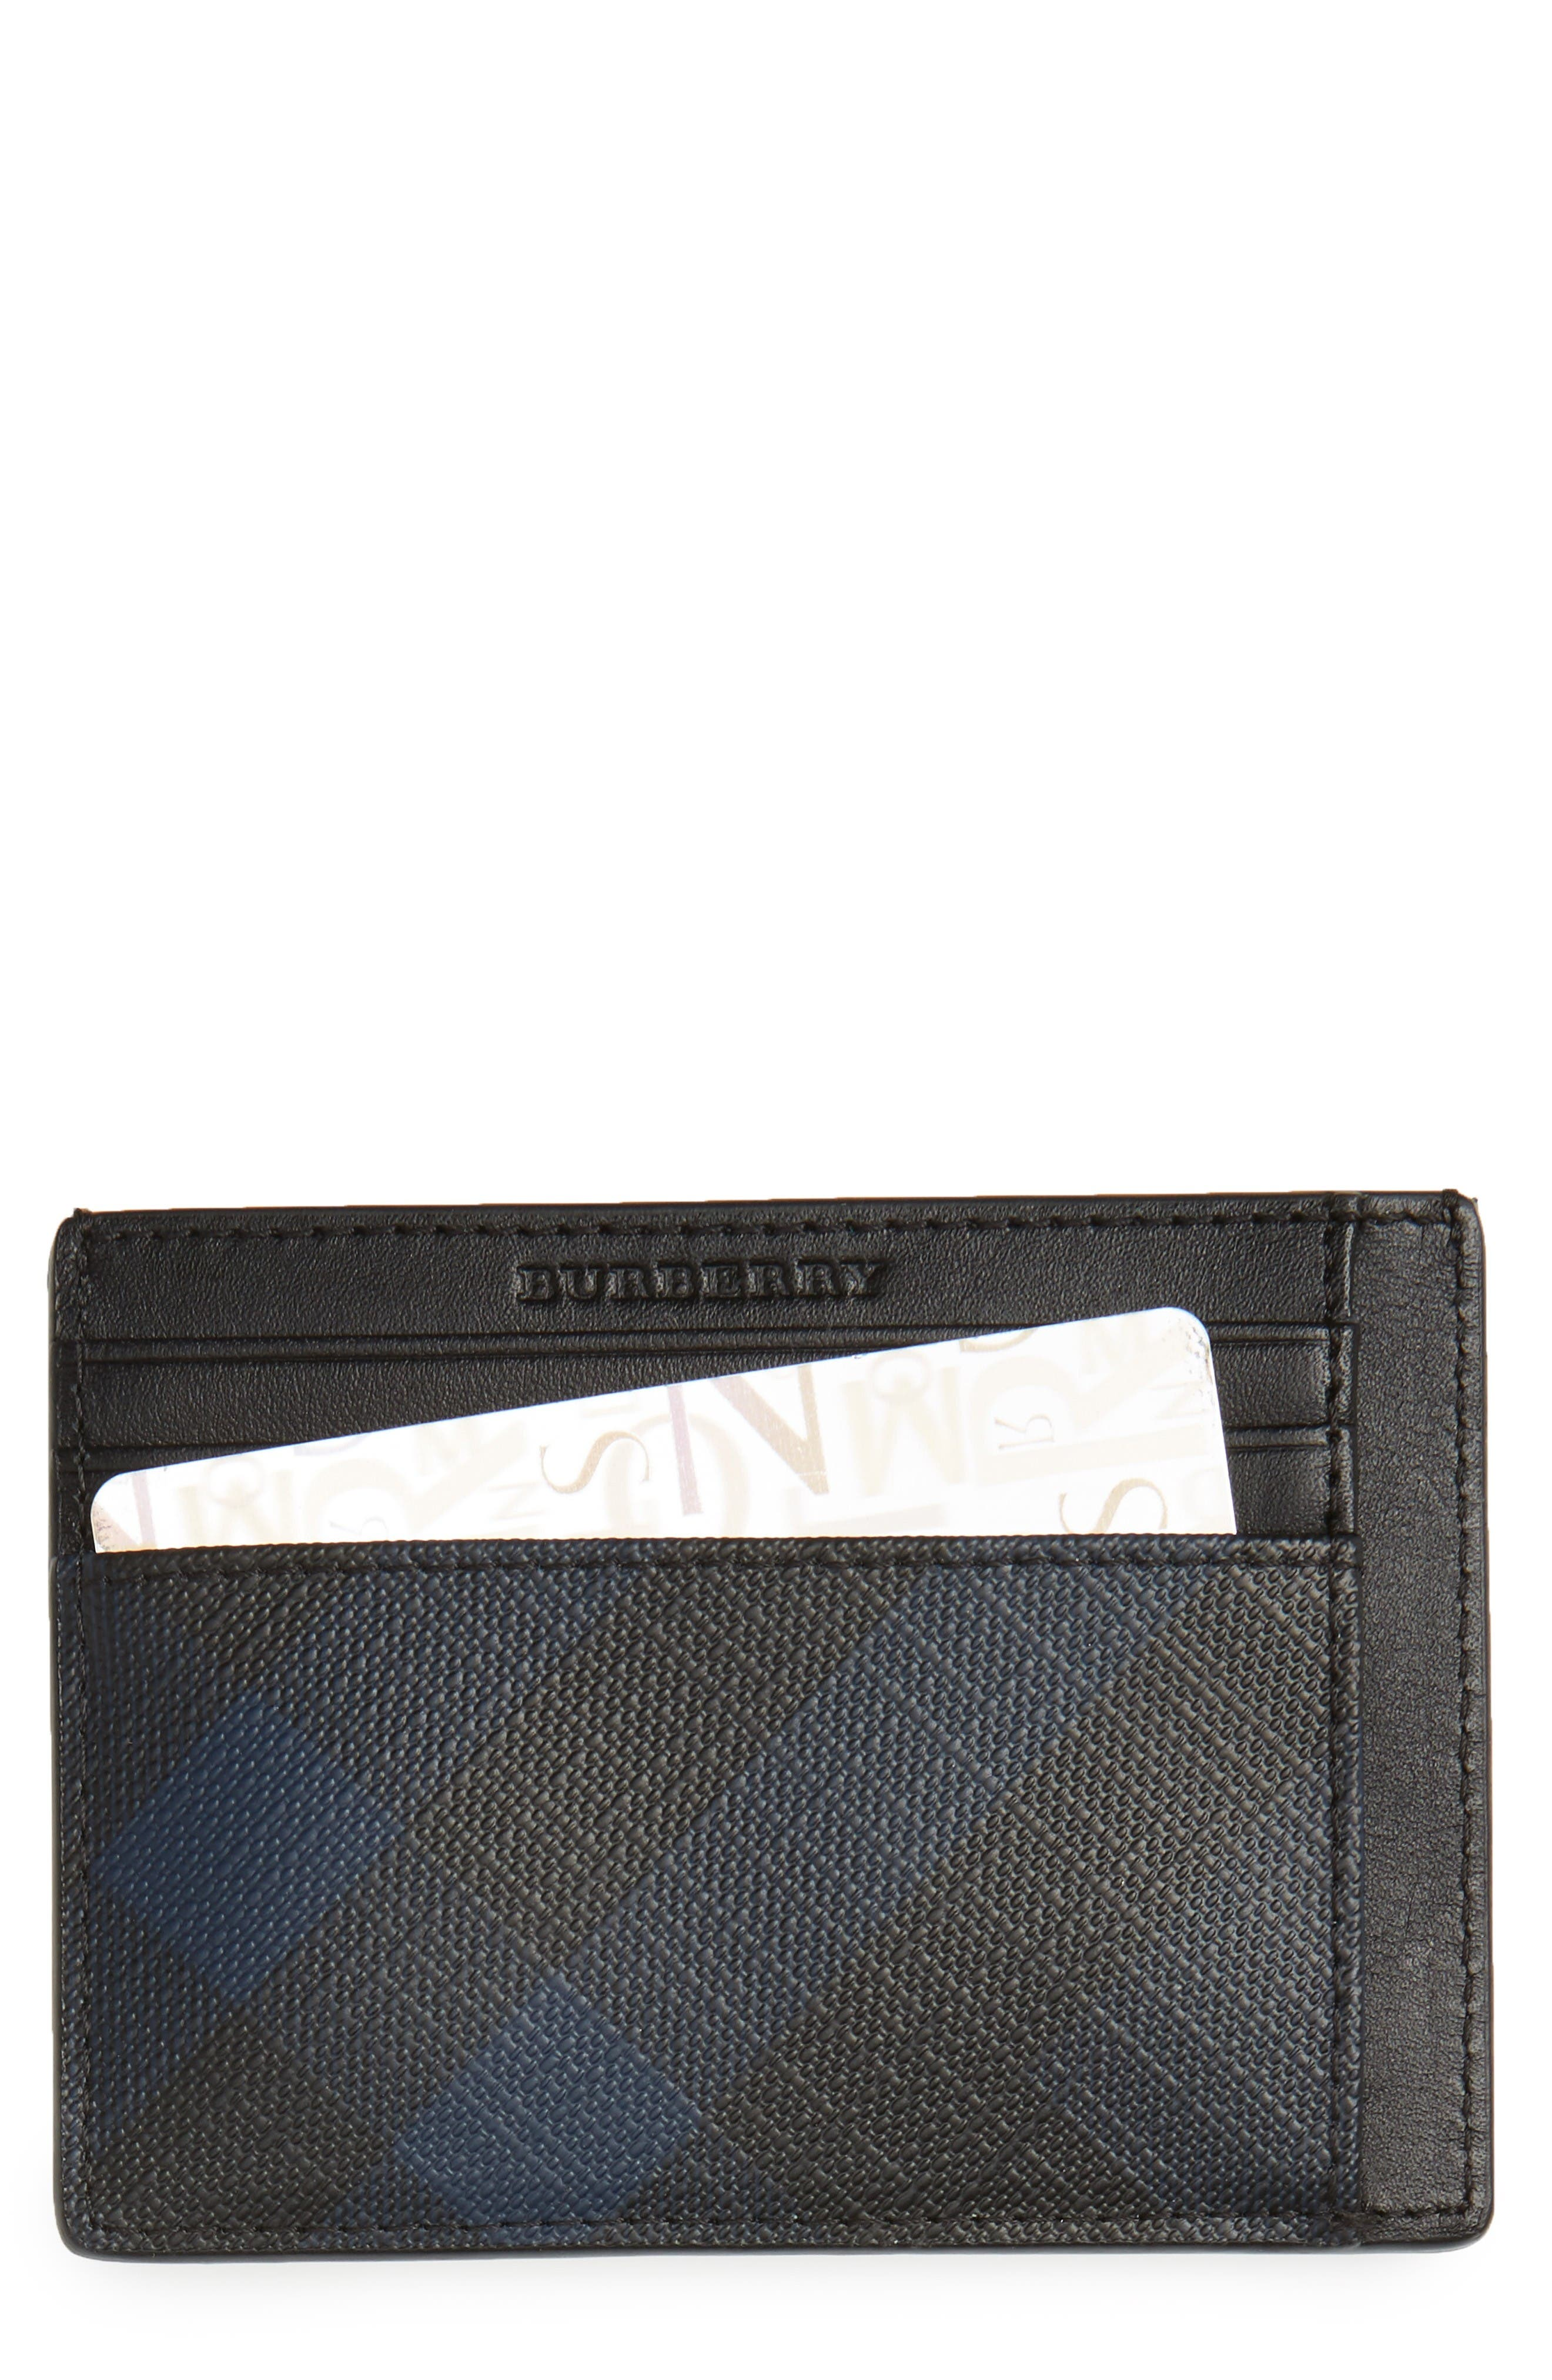 Bernie Check Card Case,                         Main,                         color, Navy